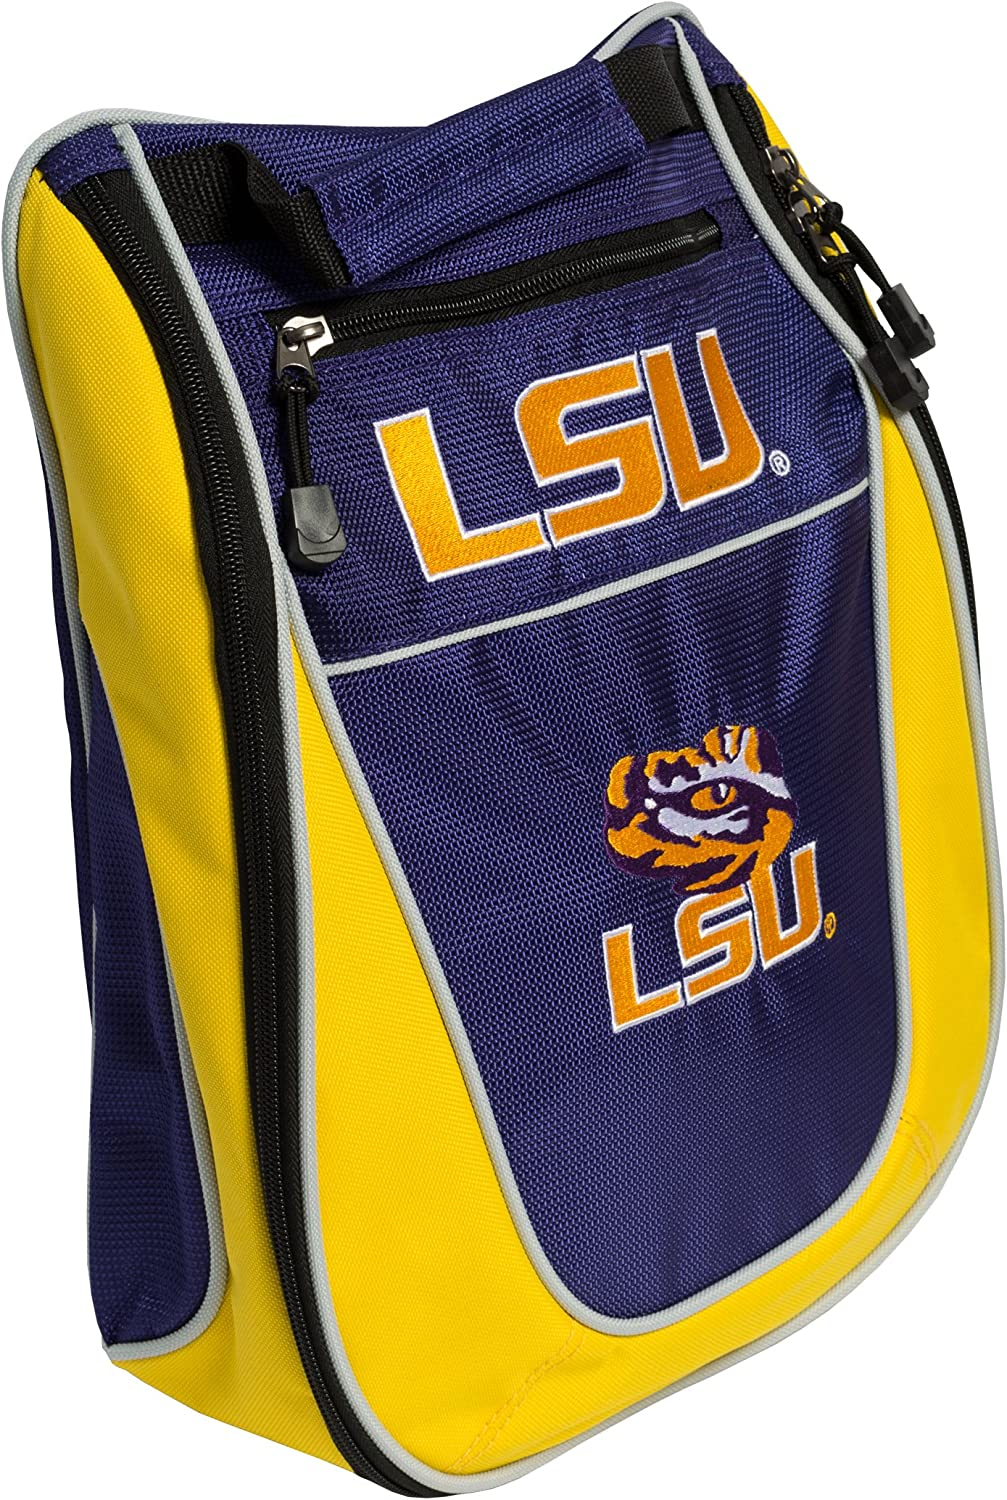 Team Golf NCAA Travel Don't miss the campaign Shoe Fashionable Reduce Bag Smells Pocket Extra